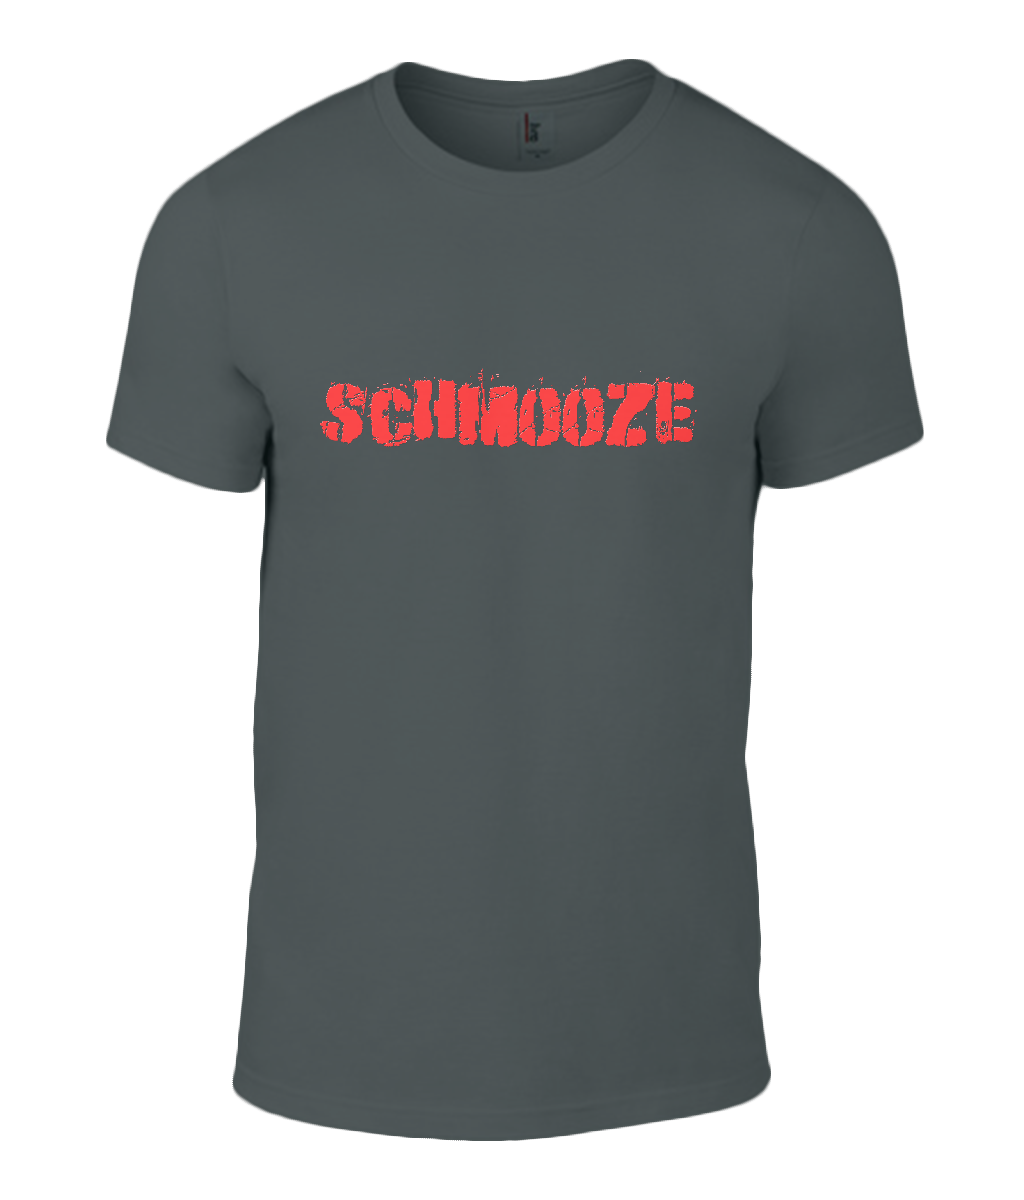 Round Neck T-Shirt - Schmooze - Lokshen Pudding UK - Black